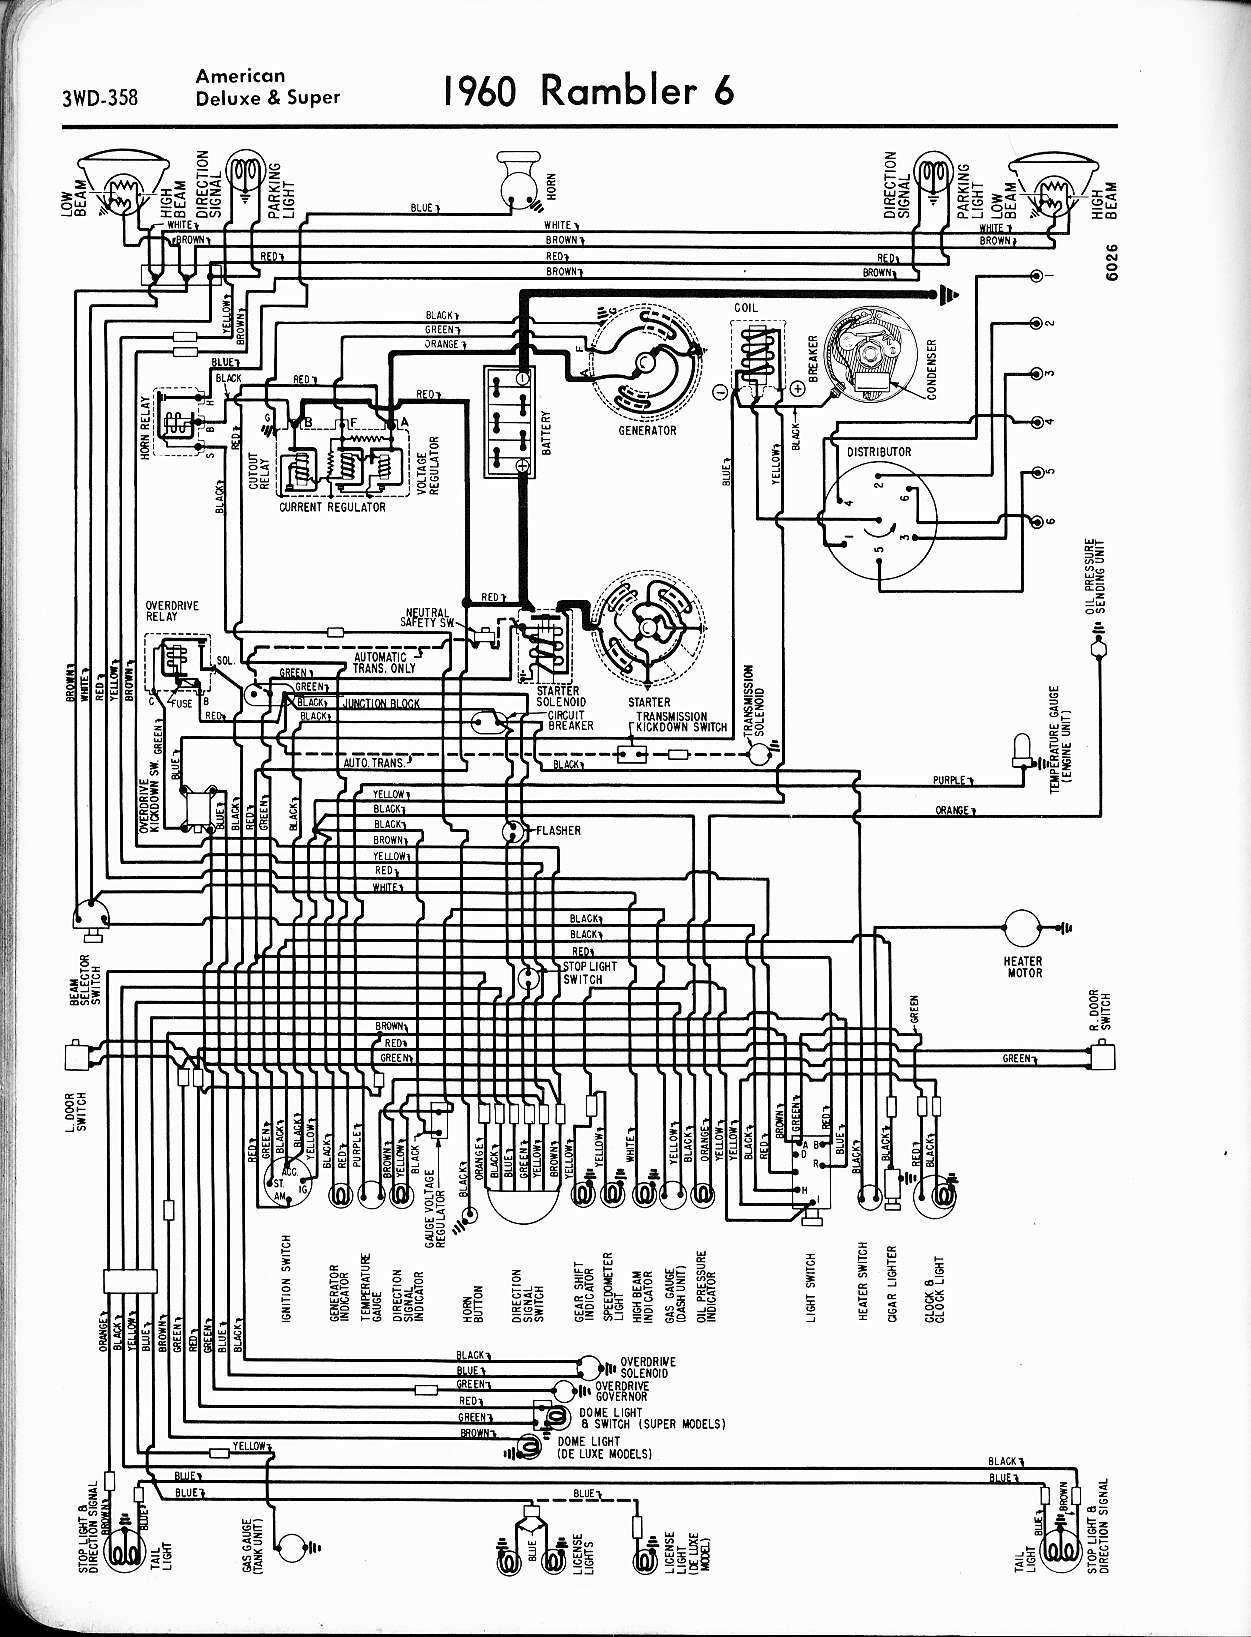 1967 rambler rebel wiring diagram auto electrical wiring diagram u2022 rh 6weeks co uk